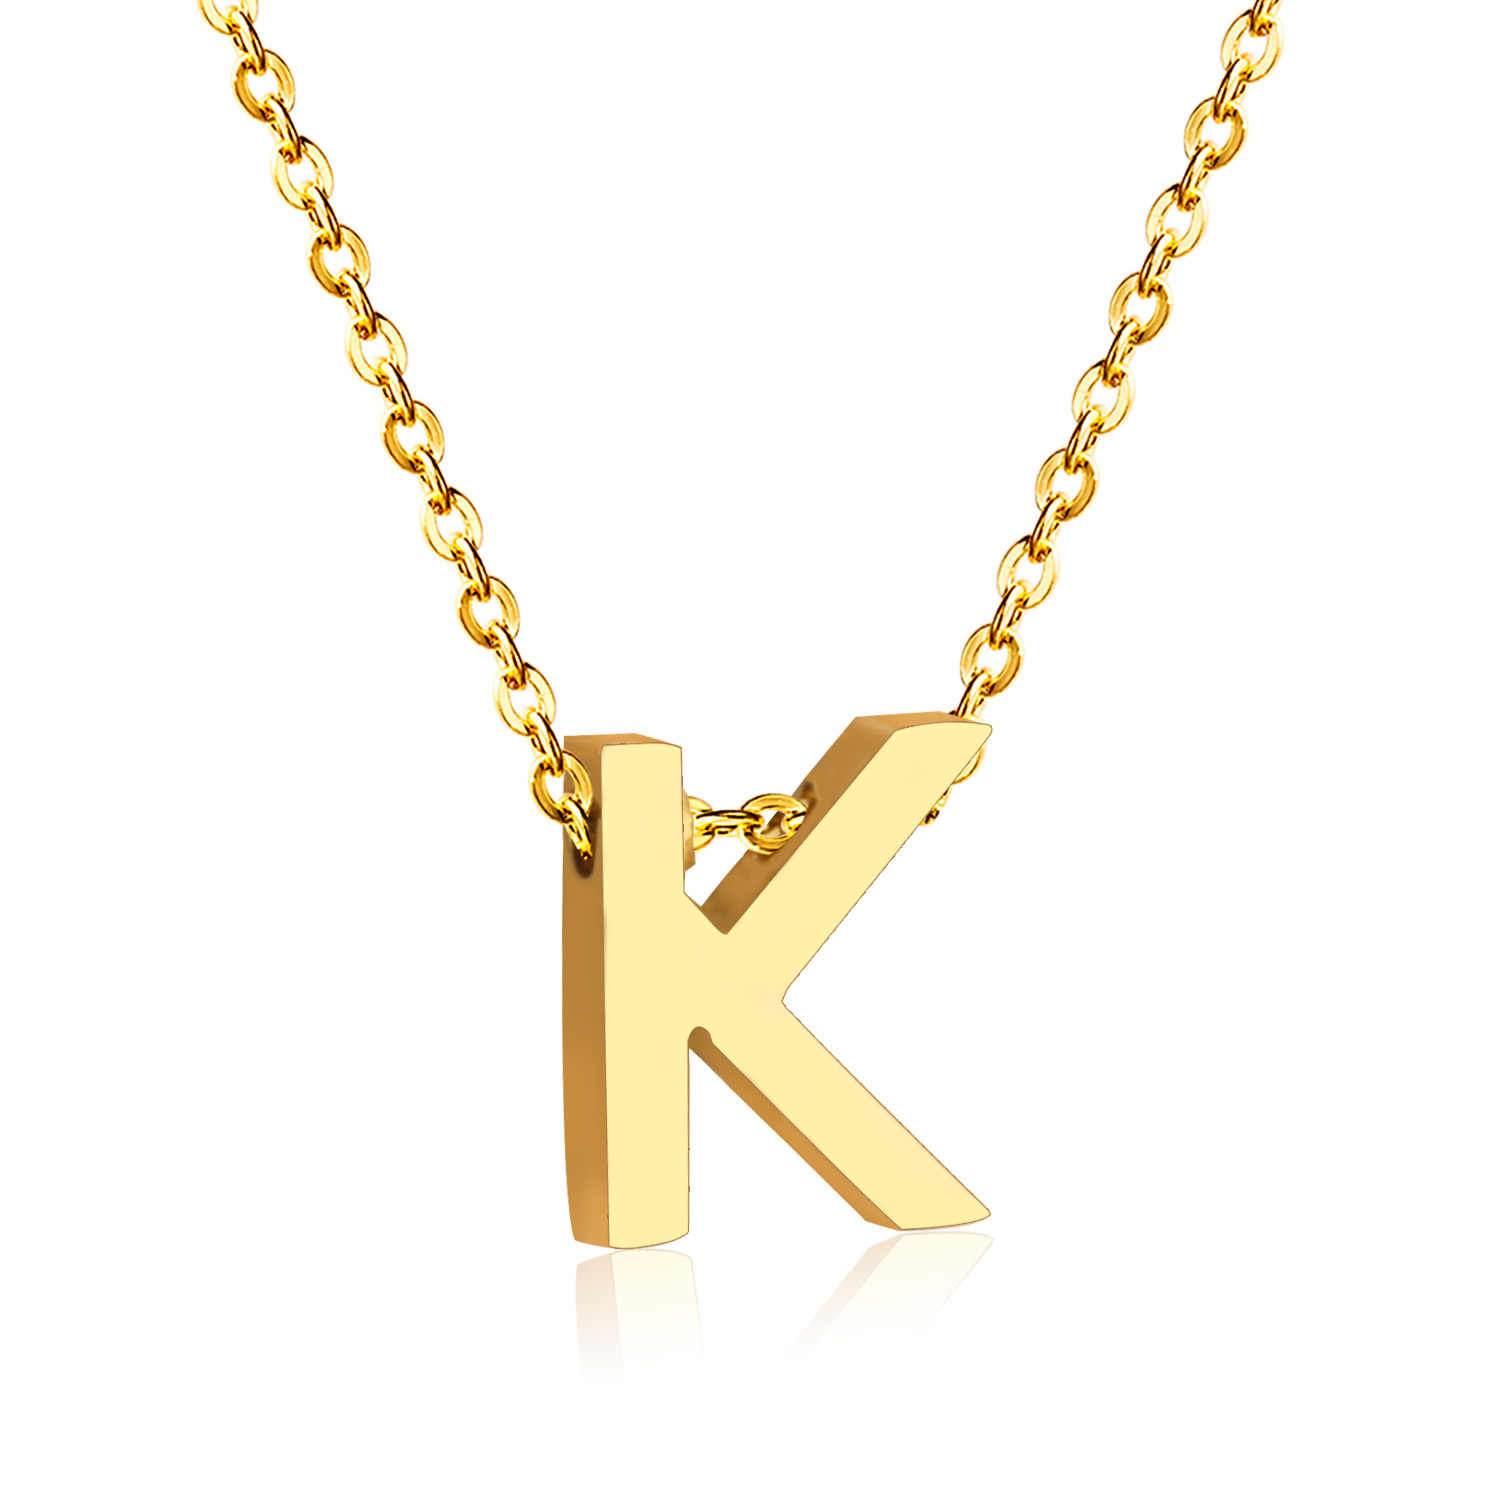 LUXUKISSKIDS Fashion Letter Necklaces Pendants Alphabet Initial Necklace Stainless Steel Choker Necklace Women Jewelry Kolye